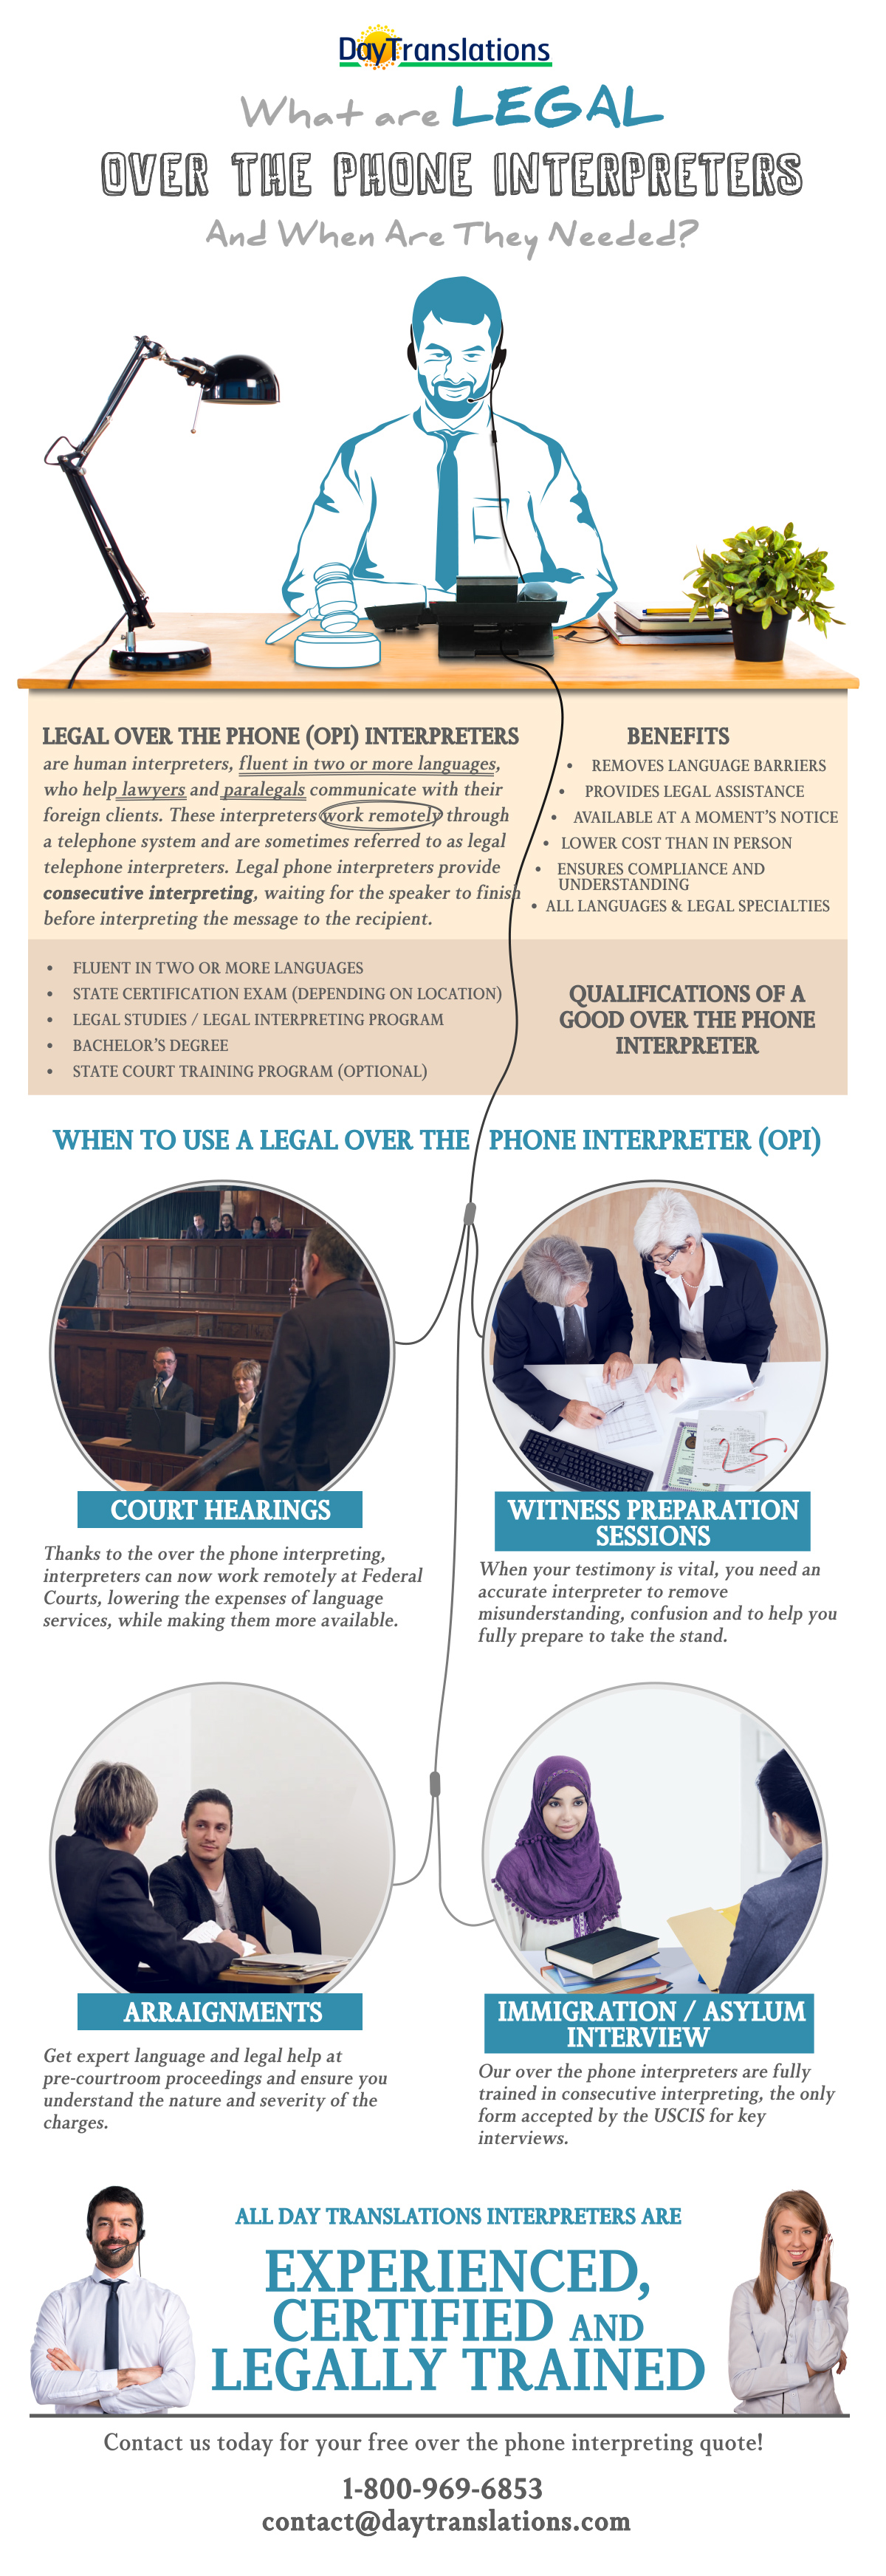 What Are Legal Over The Phone Interpreters And When Are They Needed